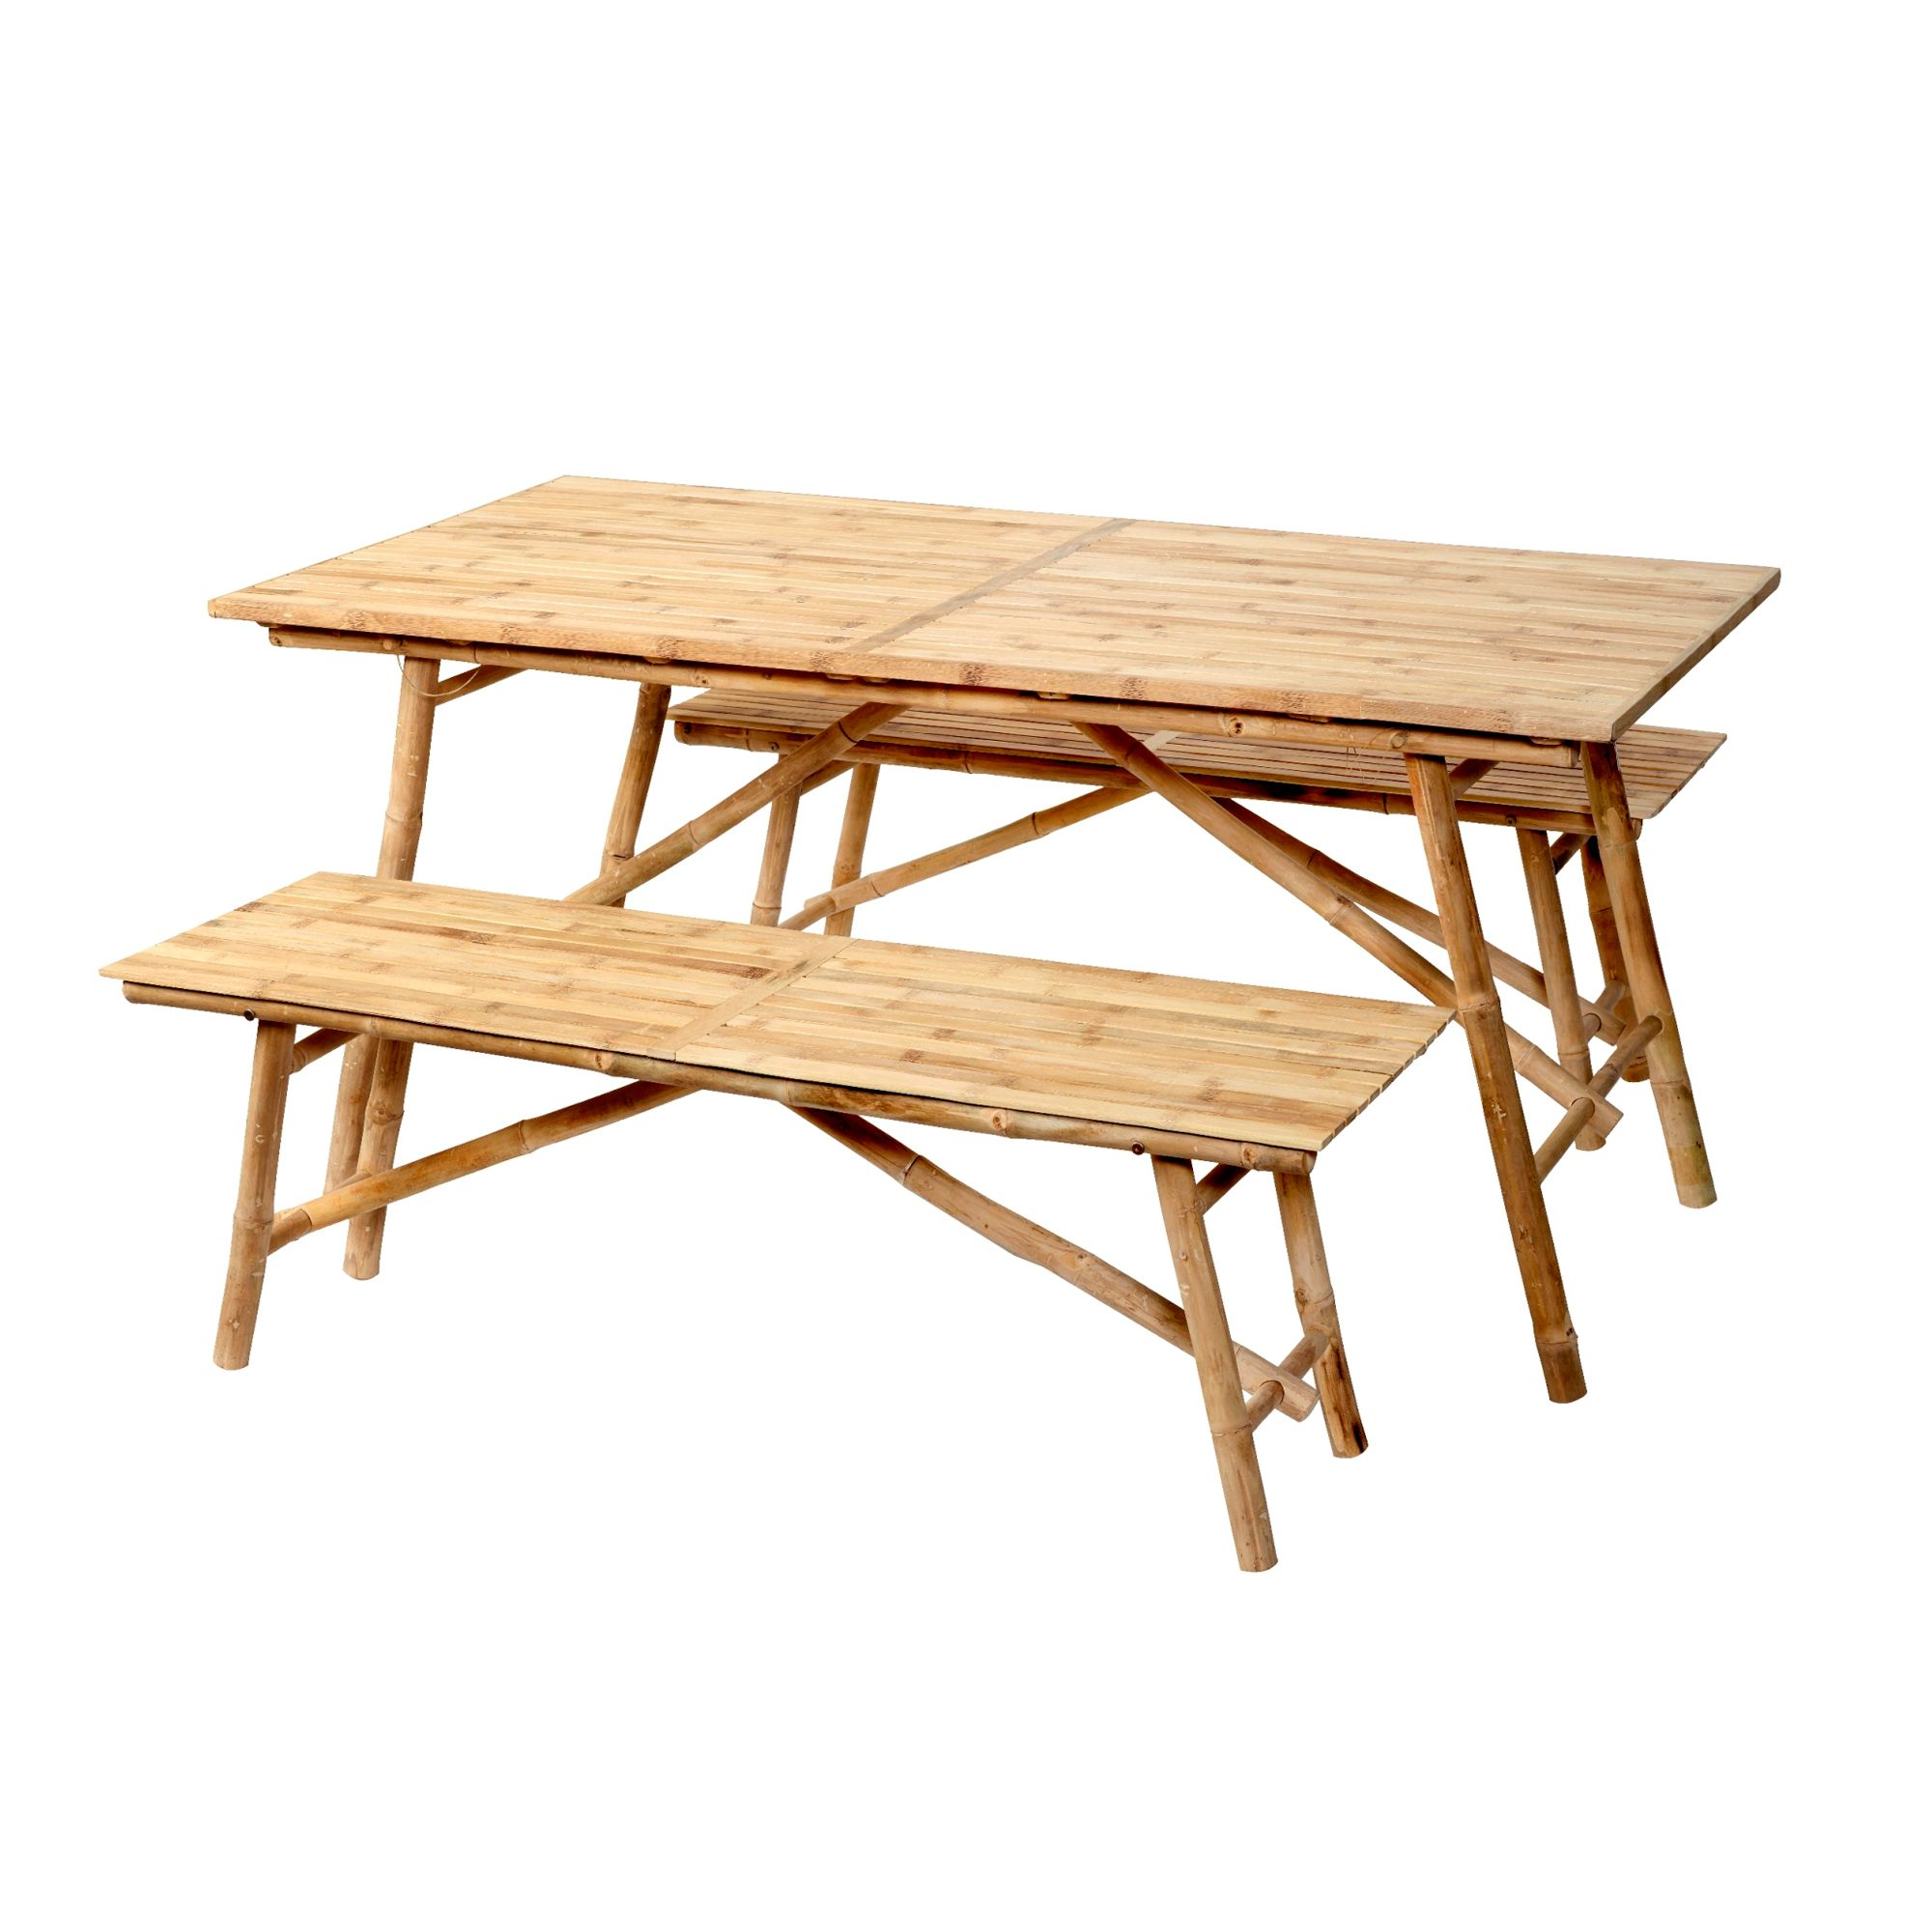 Phenomenal Bamboo Table Bench Set Black Friday Furs Bamboo Gmtry Best Dining Table And Chair Ideas Images Gmtryco